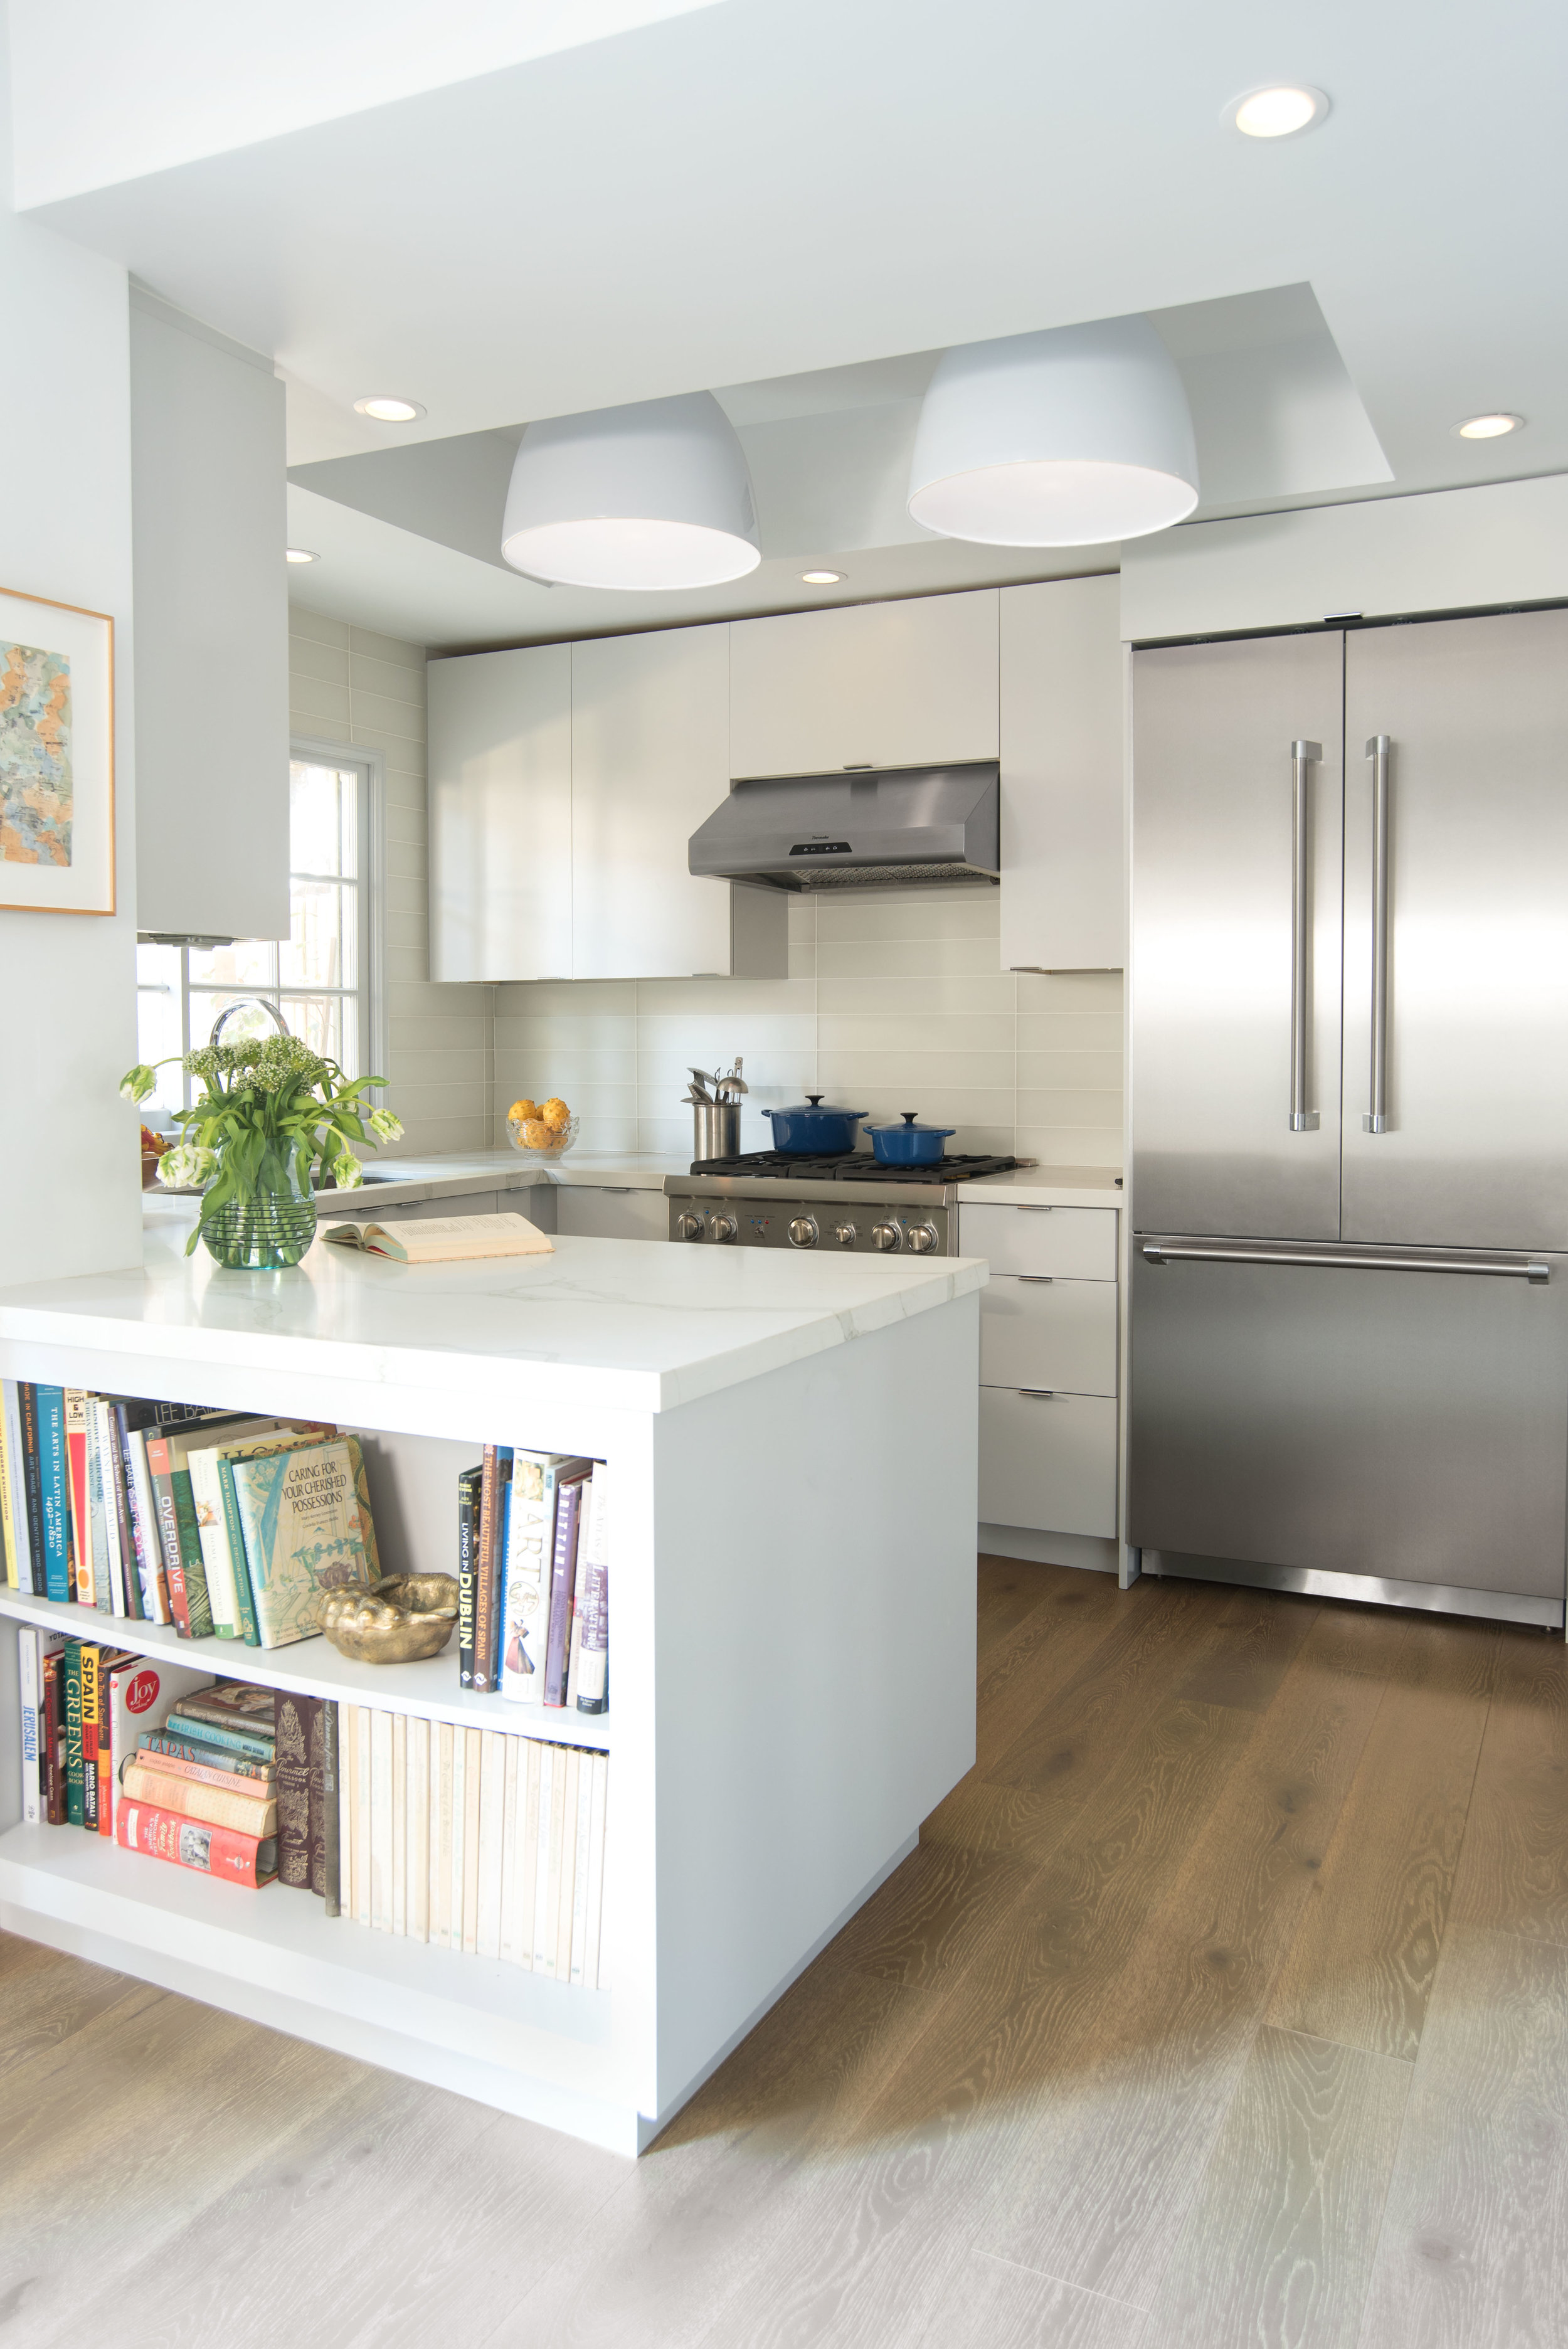 A tidy, minimalist kitchen in with open shelving to keep cookbooks close at hand.